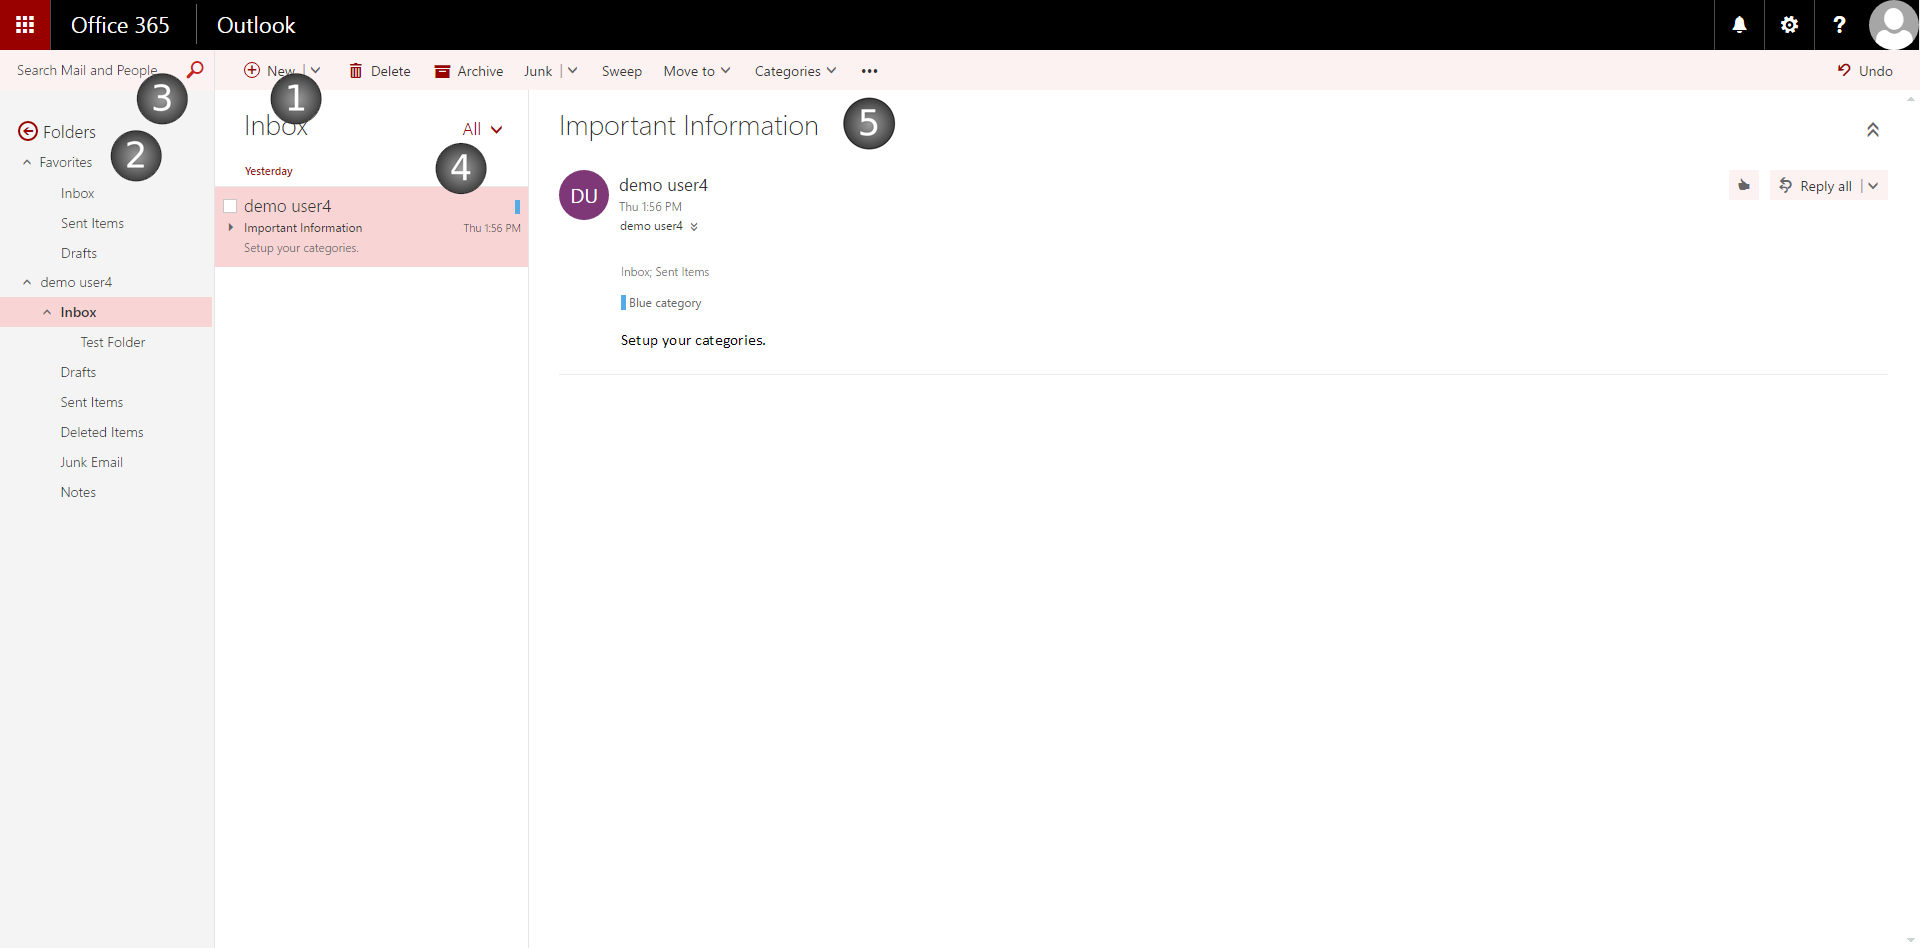 Layout of the Mail Screen in the Outlook Web App